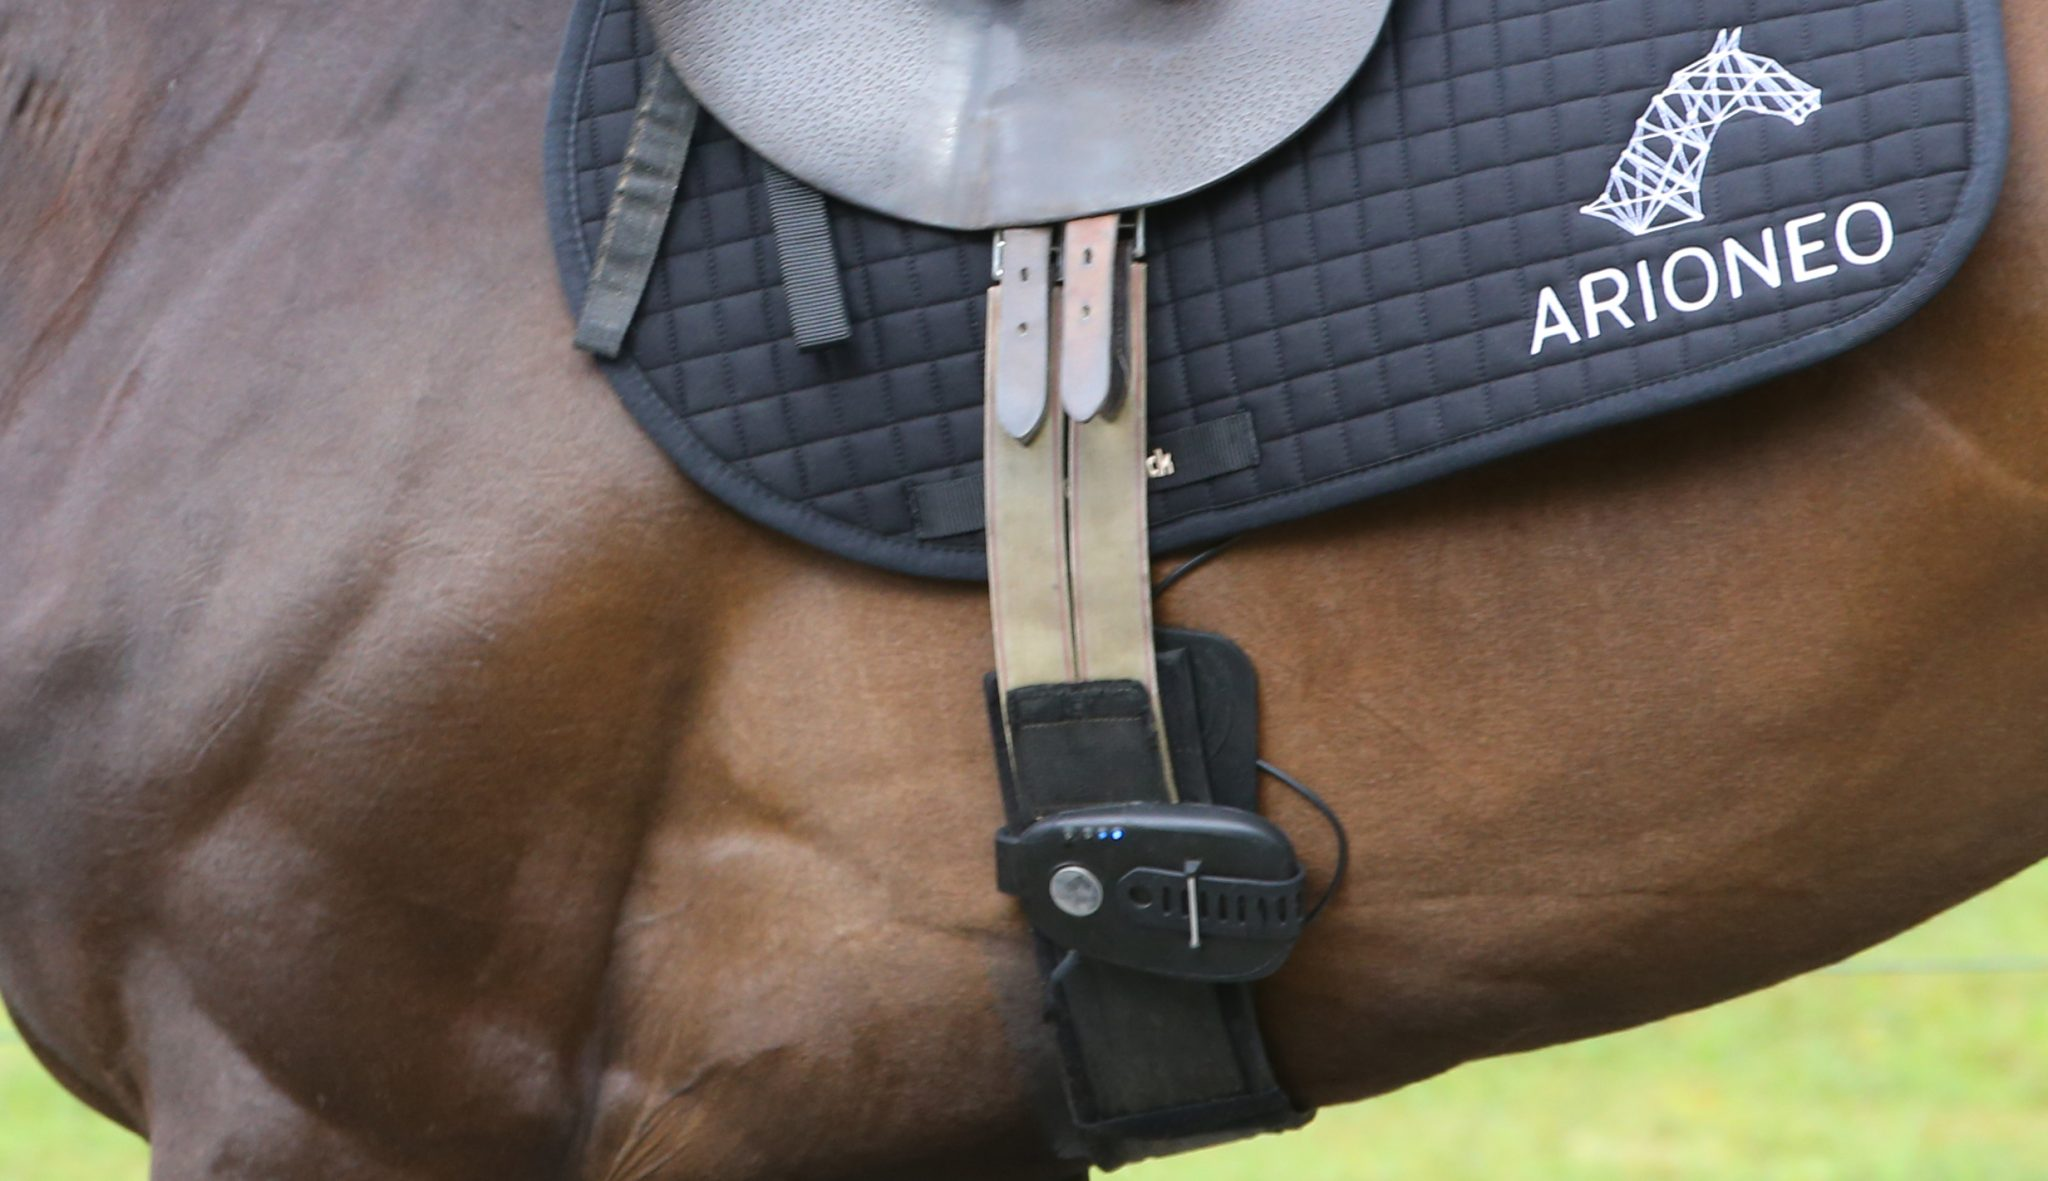 Arioneo and EQUIMETRE connected sensor fixed to the girth, during racehorses training sessions